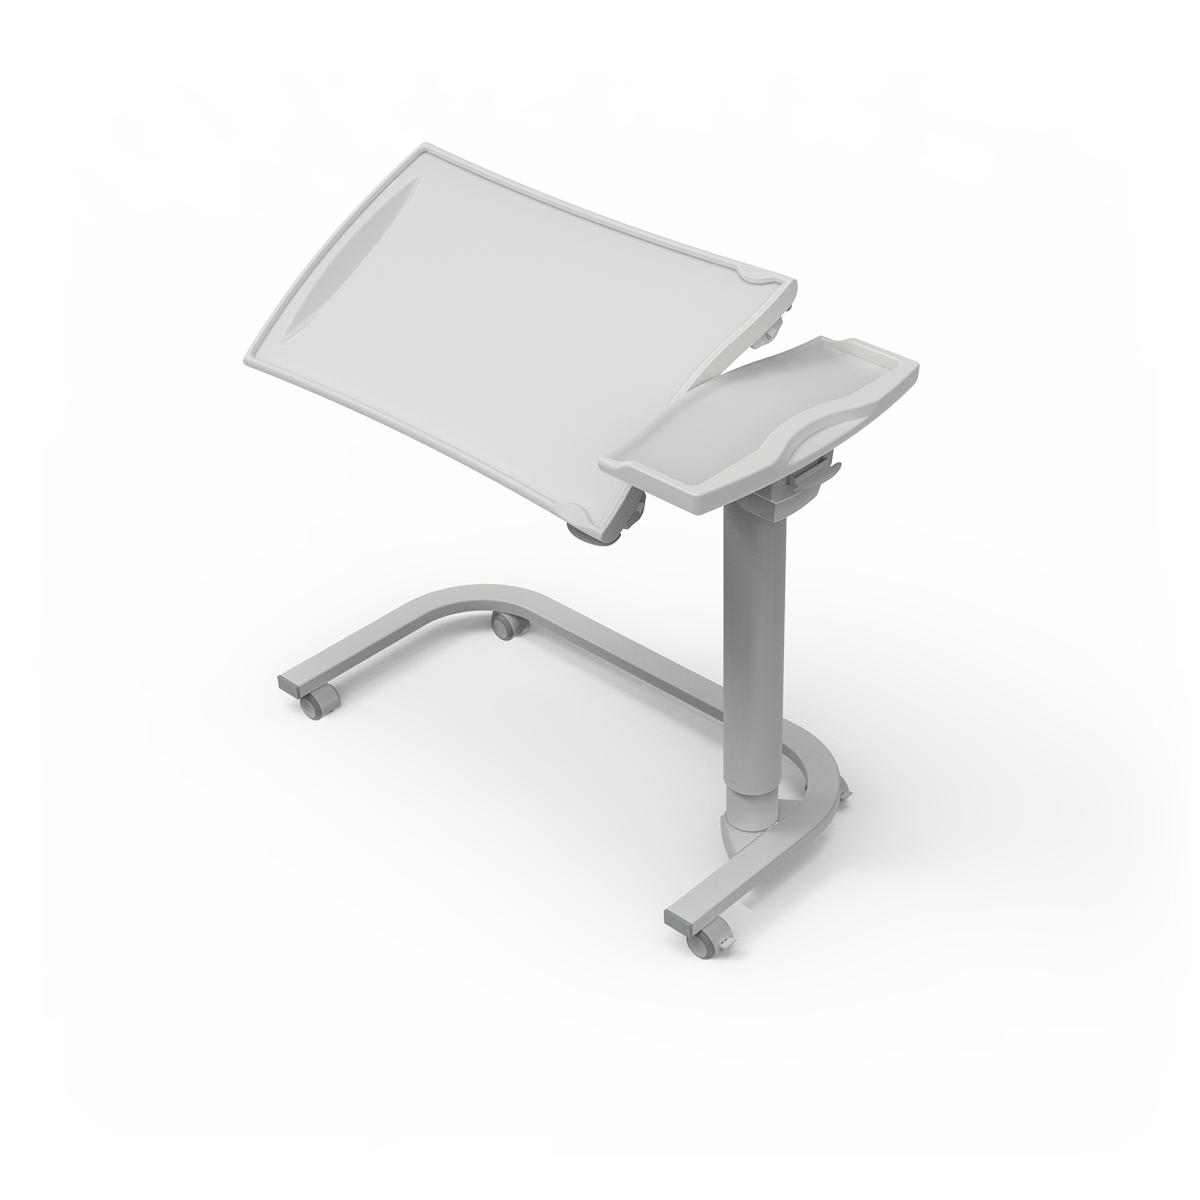 Overbed Table TA270 with u-shaped base and tilting plastic top